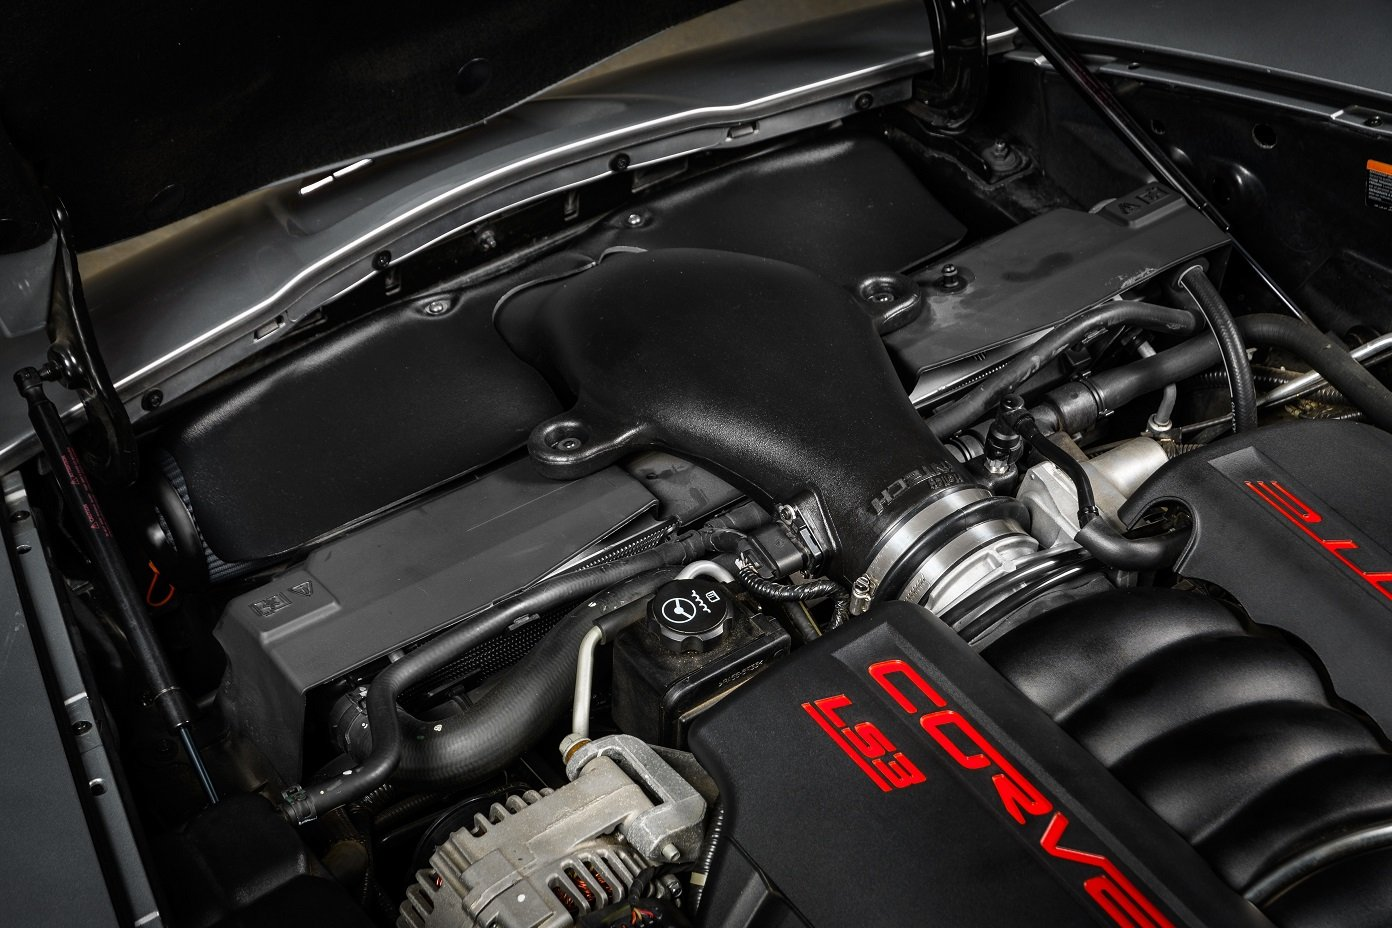 Holley Expands iNTECH Cold Air Intake Lineup To Include C6